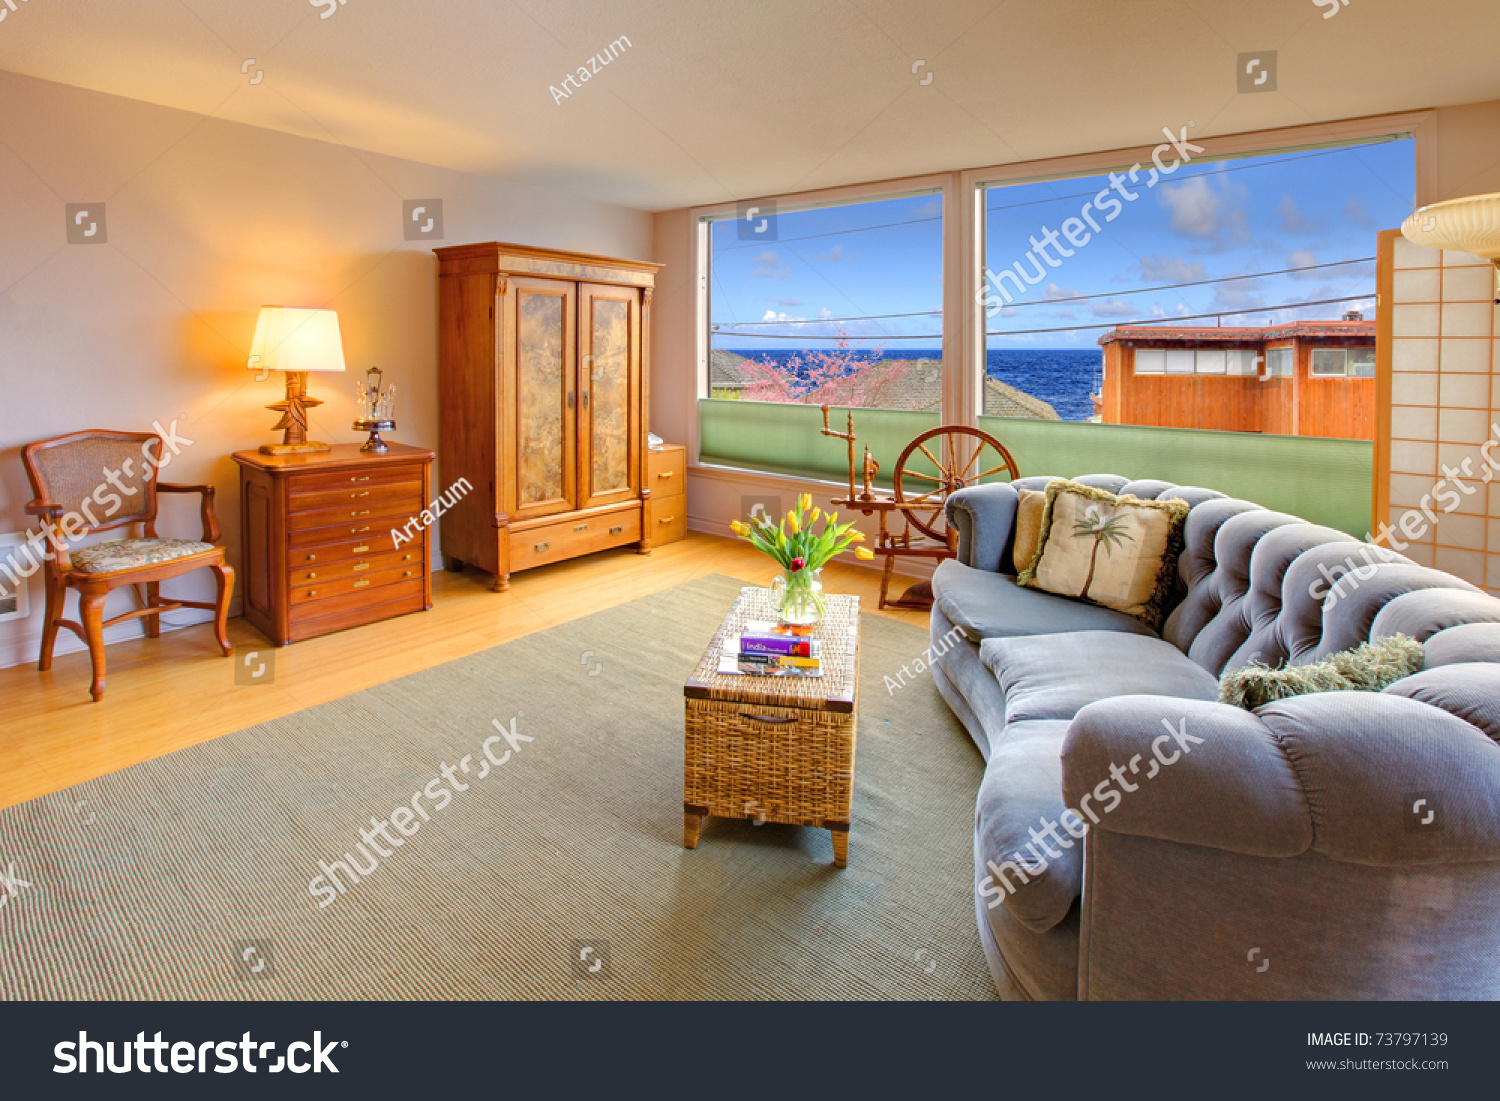 living room with antique furniture and blue sofa stock photo 73797139 shutterstock. Black Bedroom Furniture Sets. Home Design Ideas